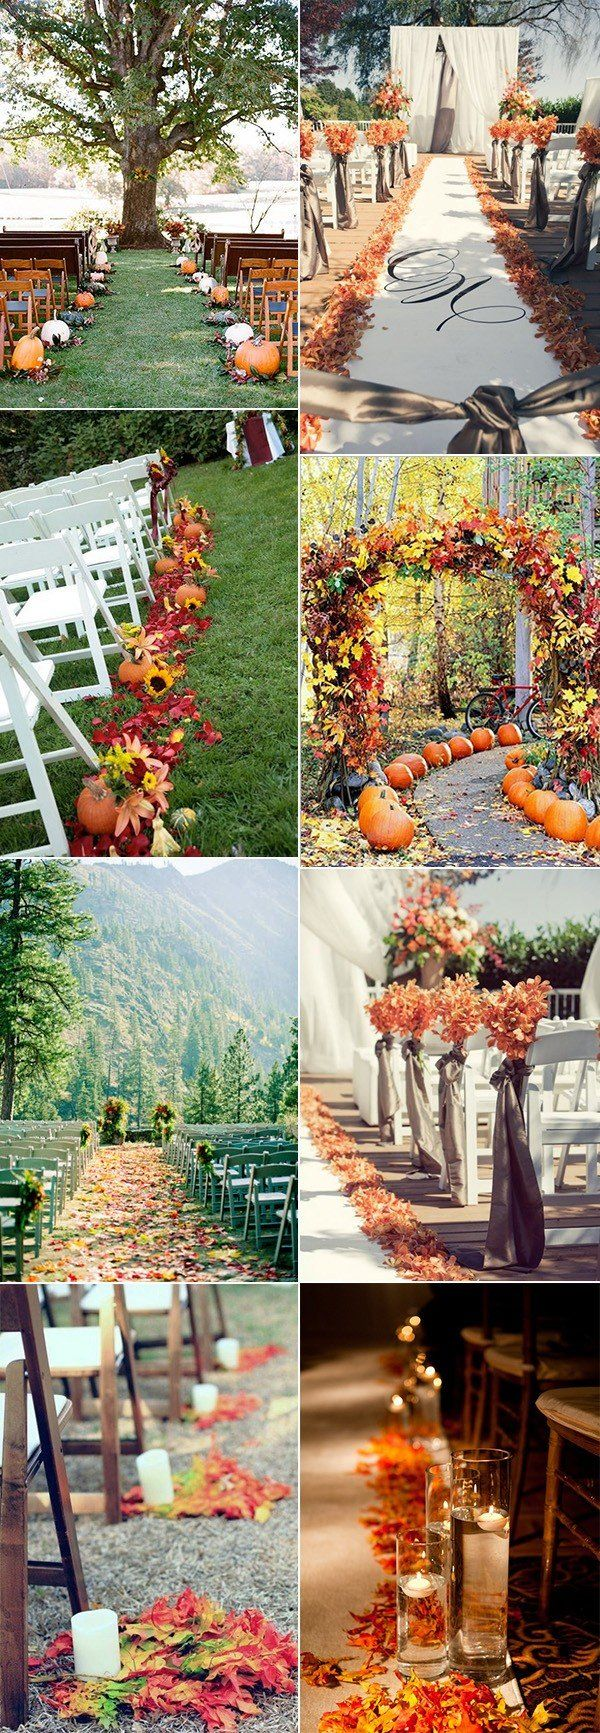 15 Things Brides Forget To When Planning An Outdoor Fall